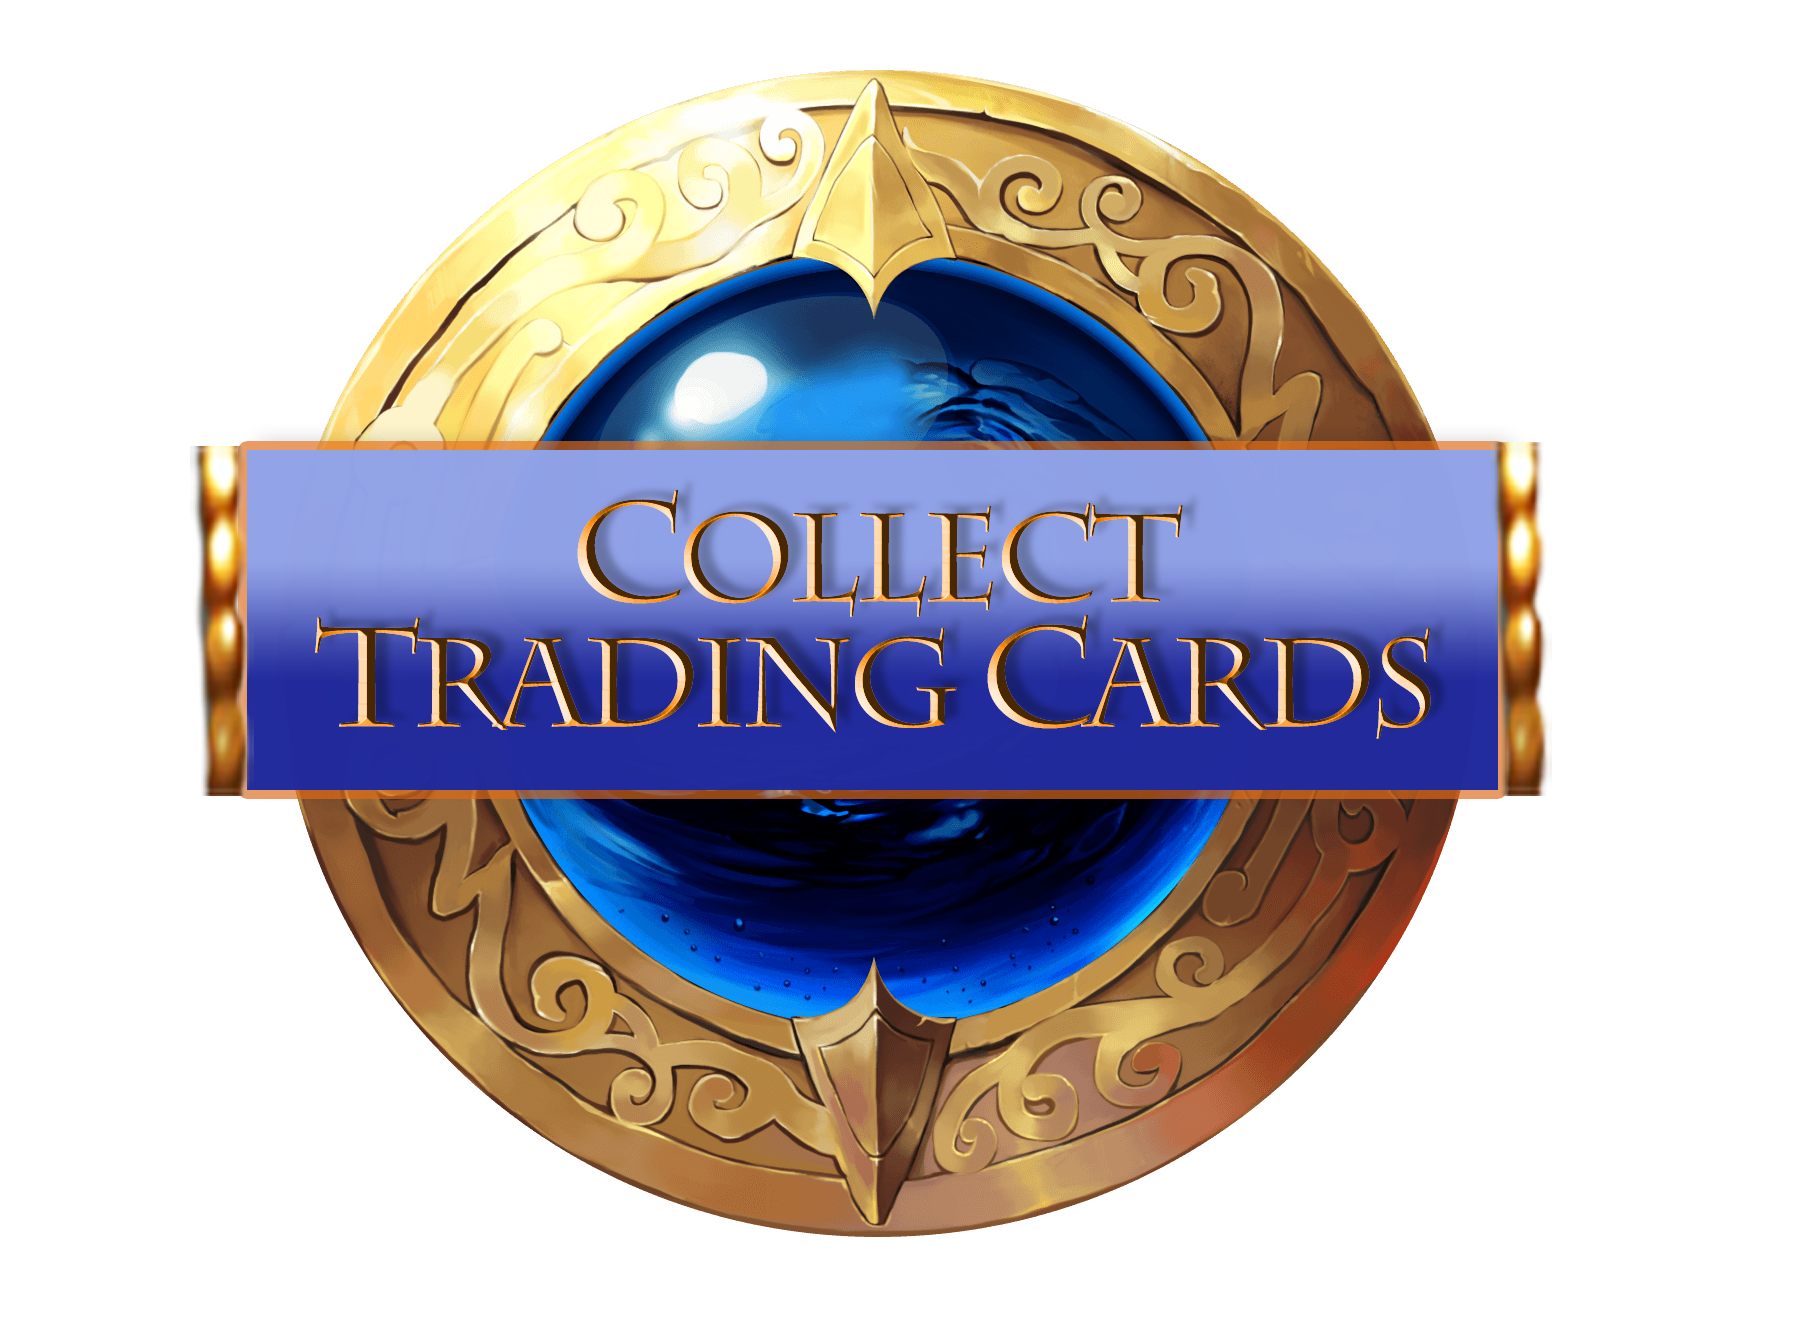 Collect Trading Cards